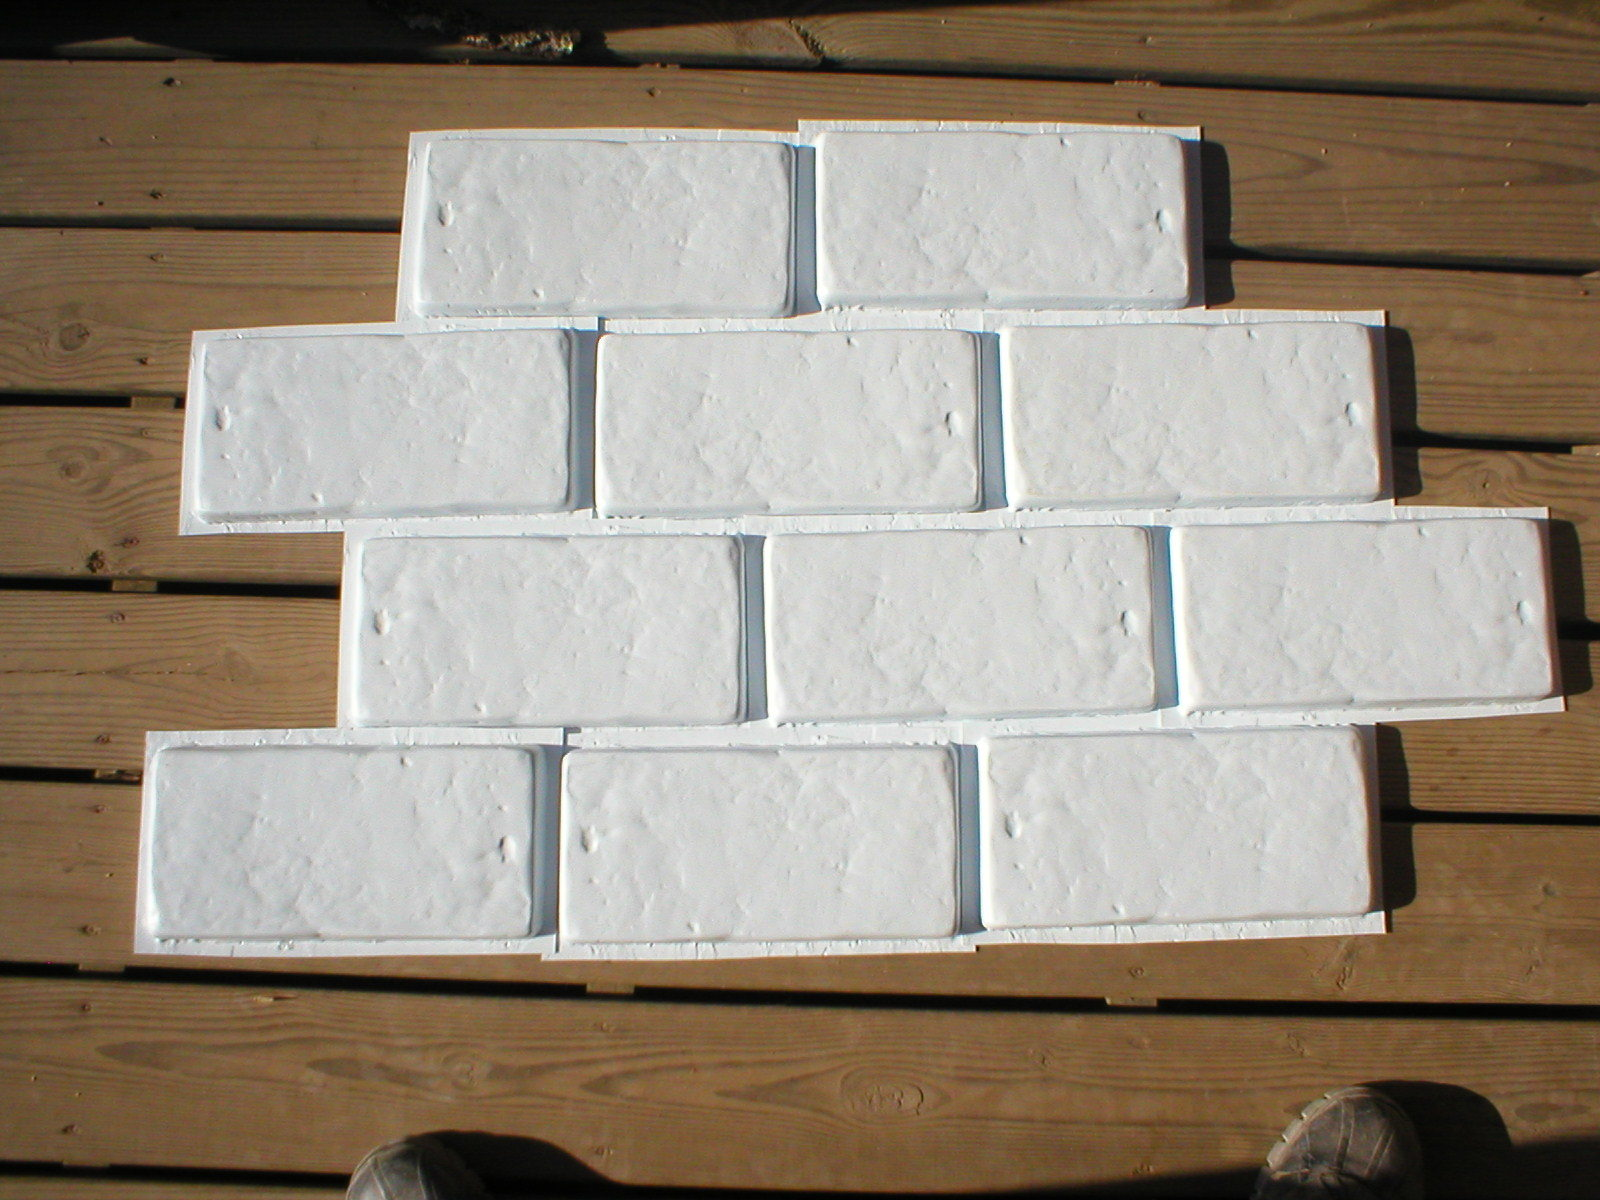 18 Concrete Brick Tile Cobblestone Molds for Walls Patios Walkways Floors 8.5x4""